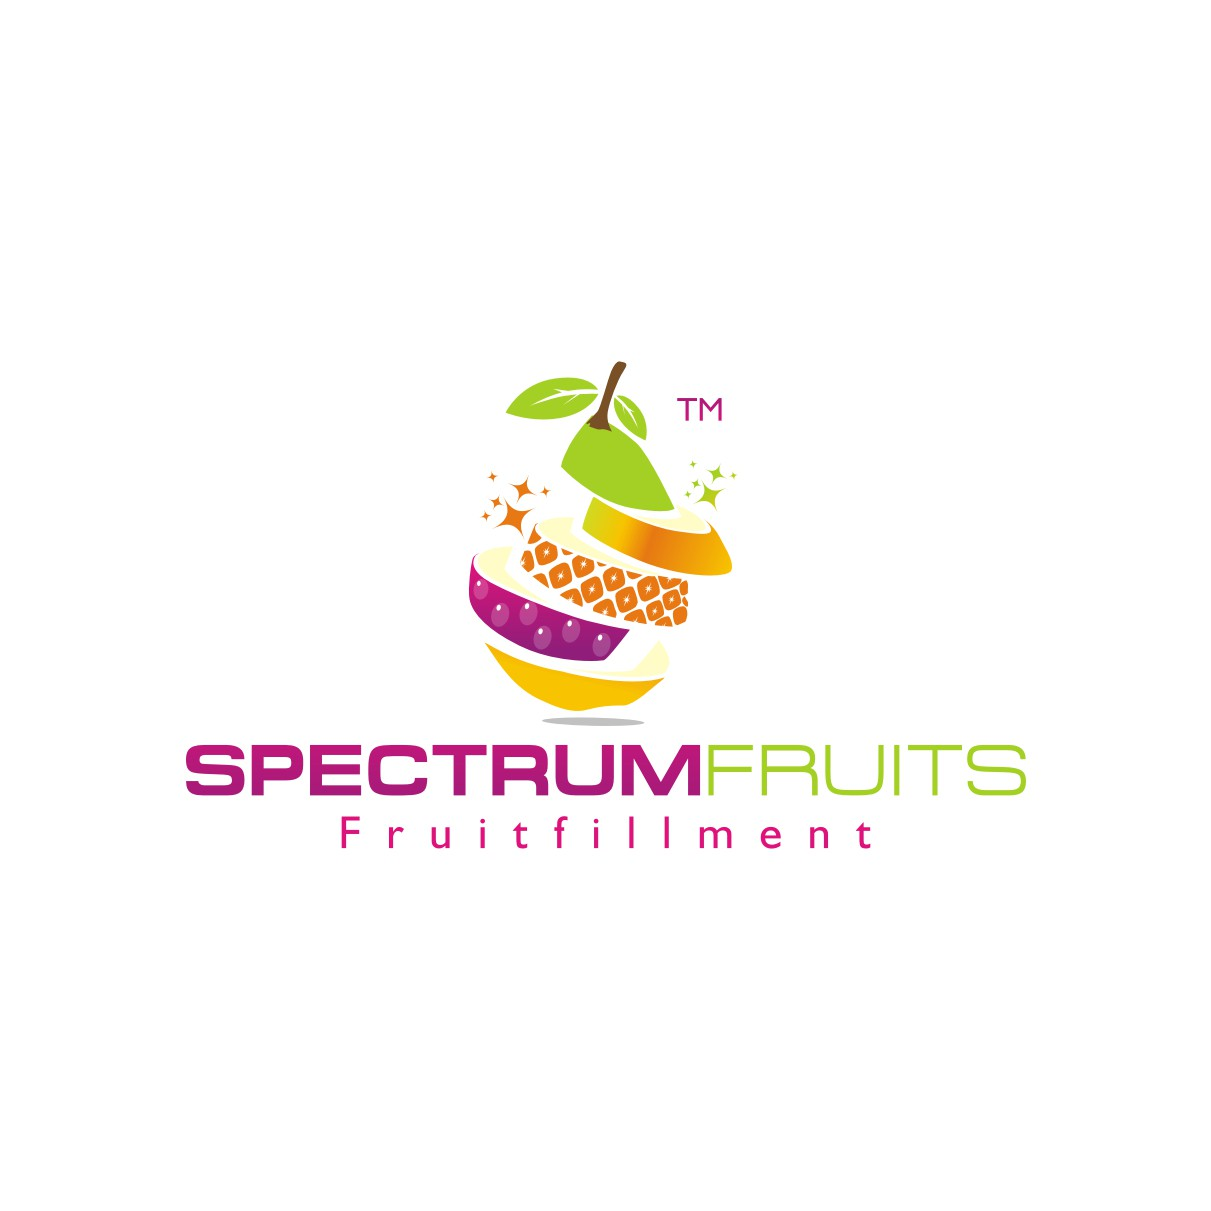 Assist in revitalizing a 31-year-old family company - fruit products from around the world